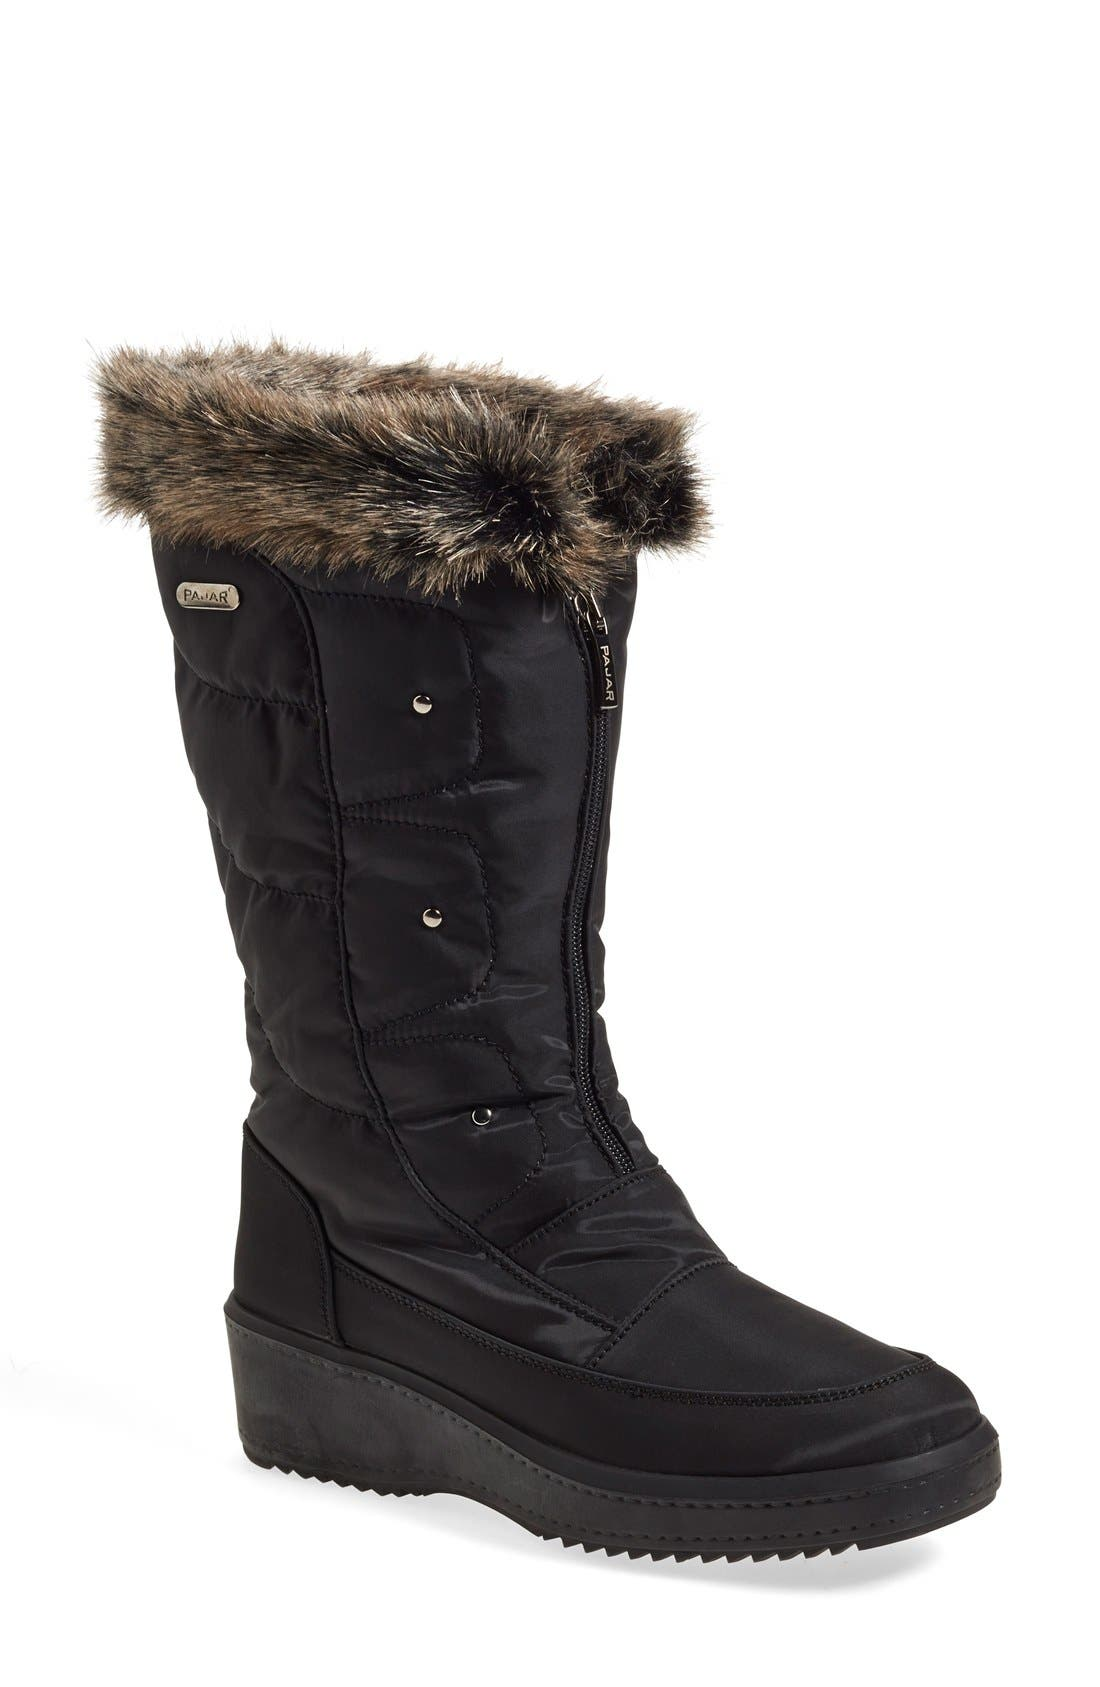 'Louise' Weatherproof Boot,                             Main thumbnail 1, color,                             001